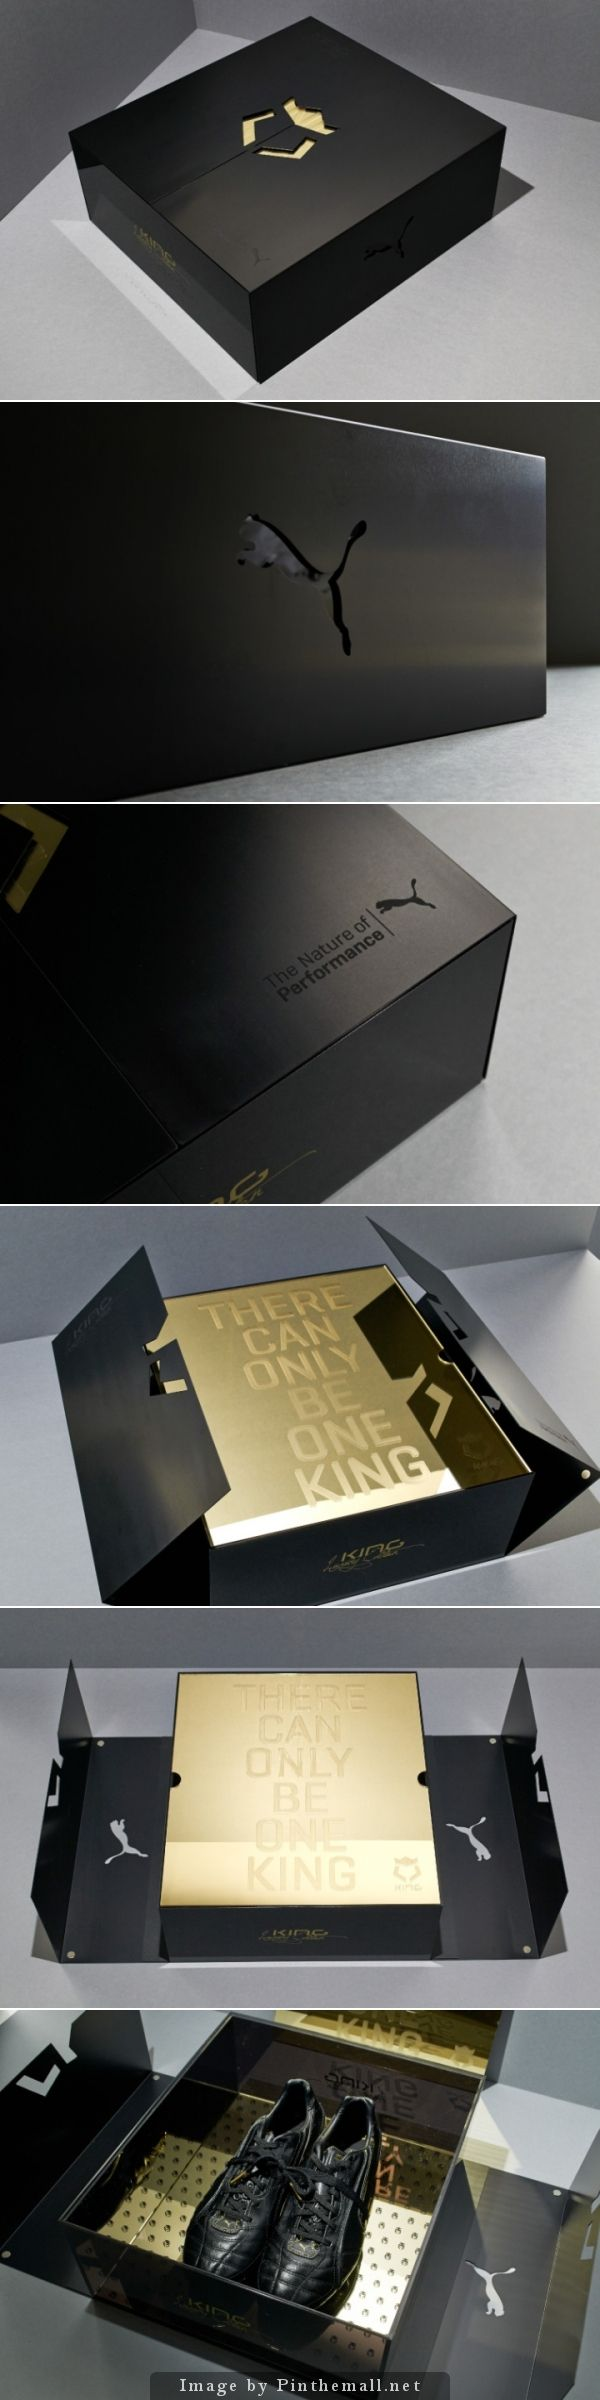 www.edlimited.com Puma King Lux Limited Edition packaging